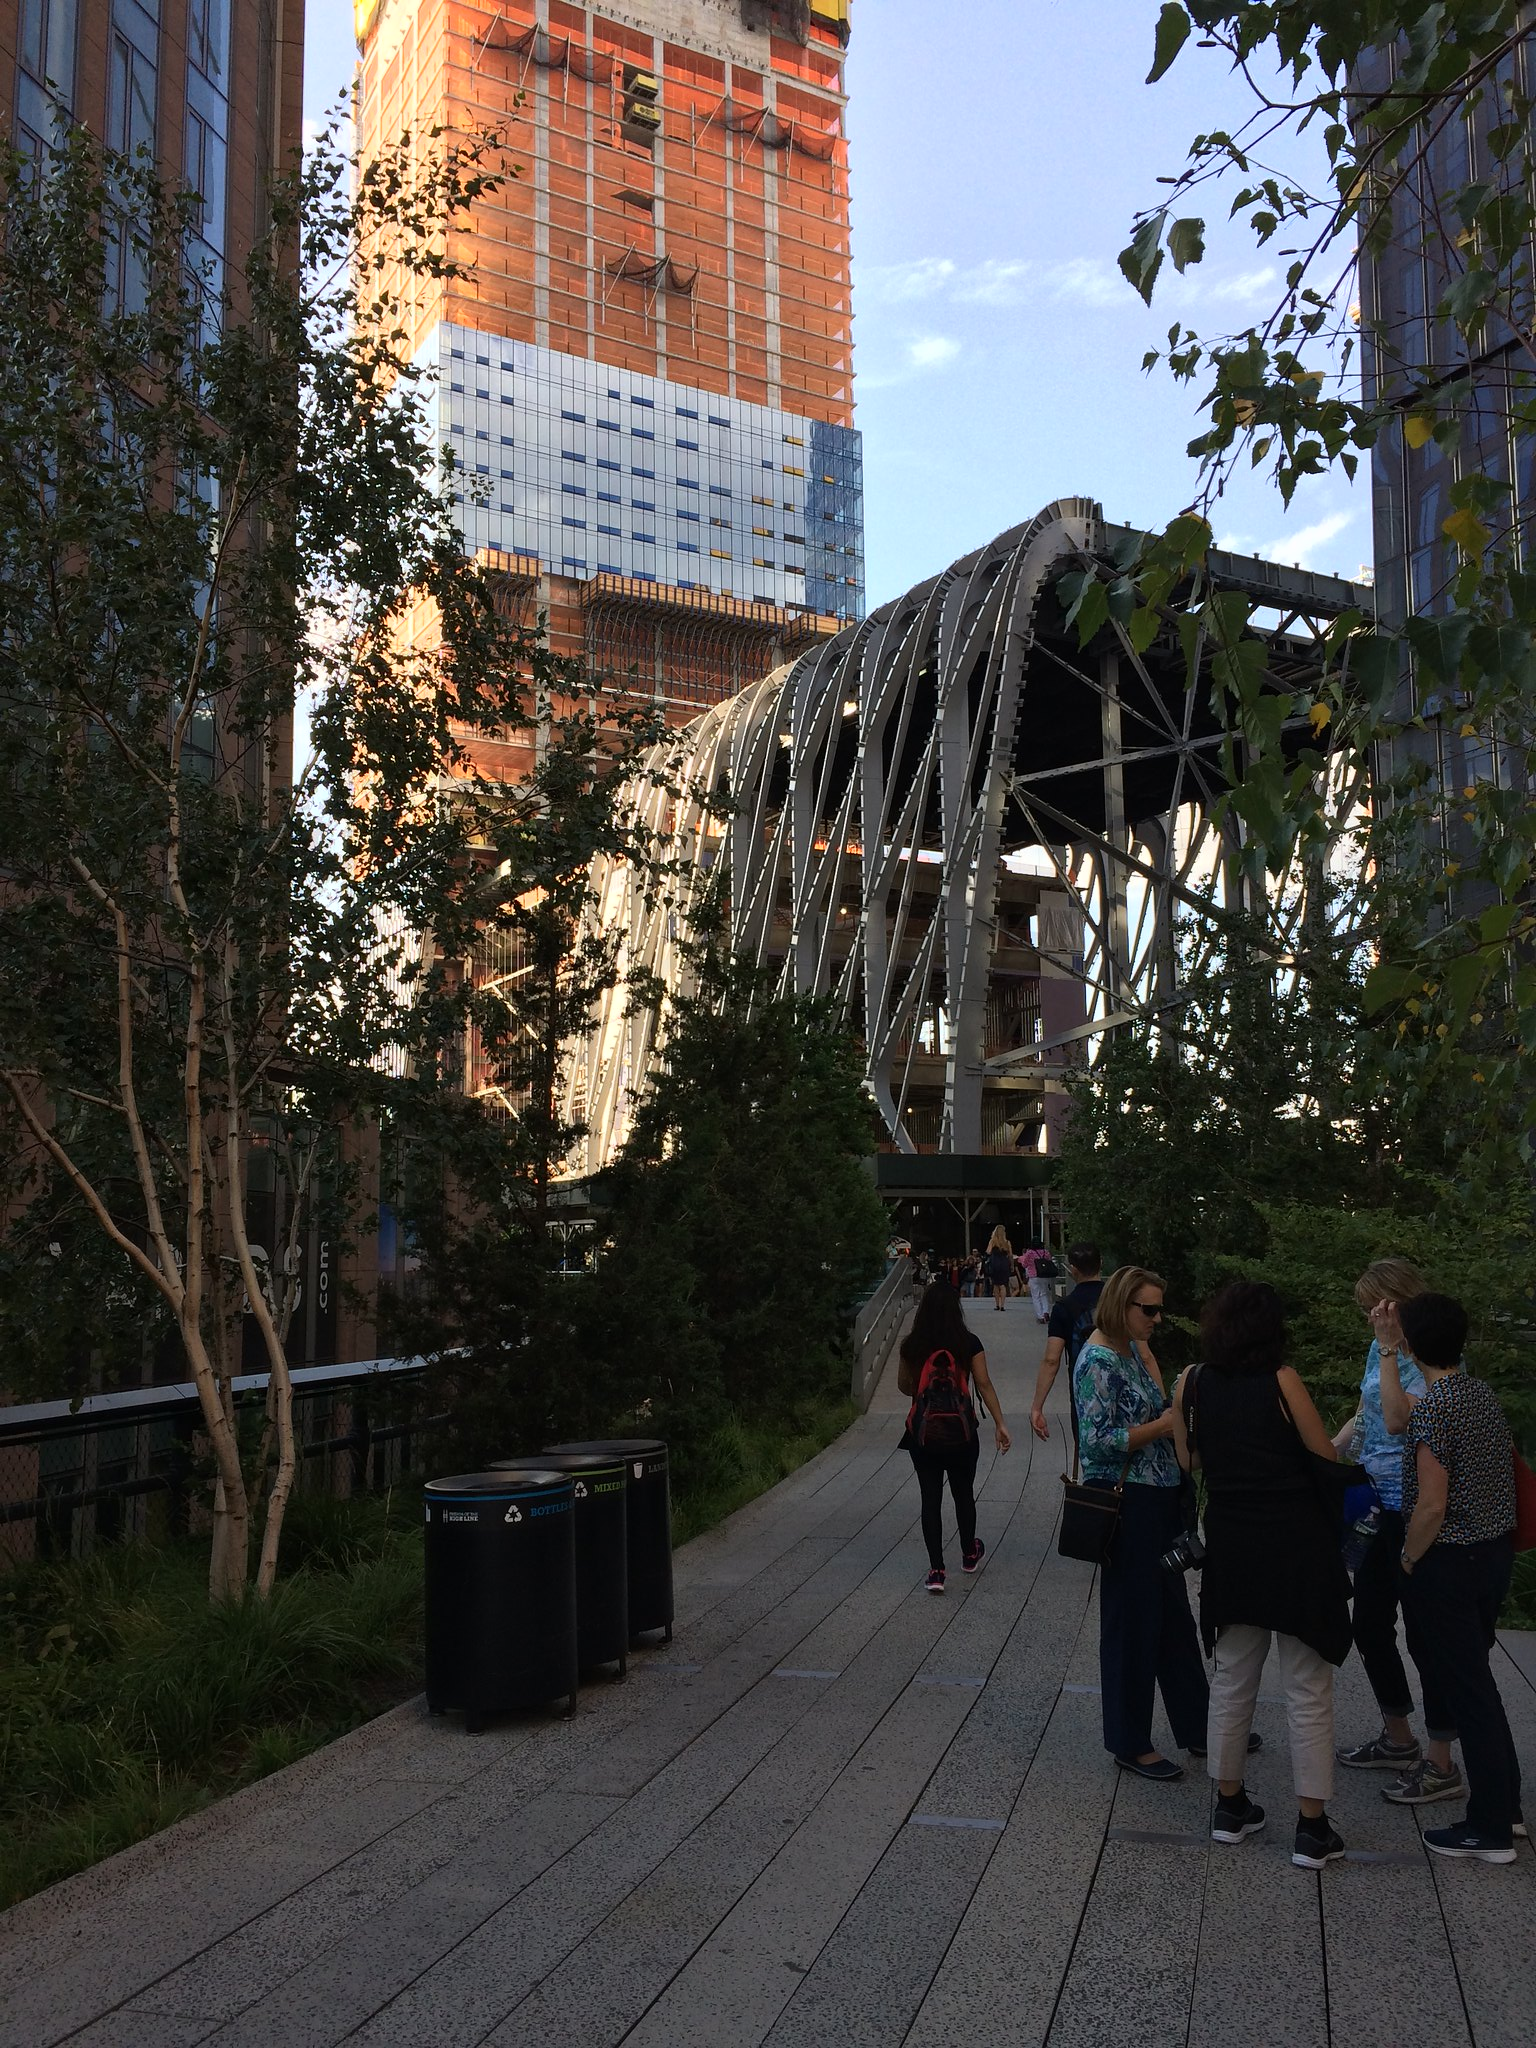 New York City's High Line, in the foreground, and Hudson Yards, under construction in this photo, are symbols of the city's recent focus on the wealthy. Photo by Yonah Freemark.